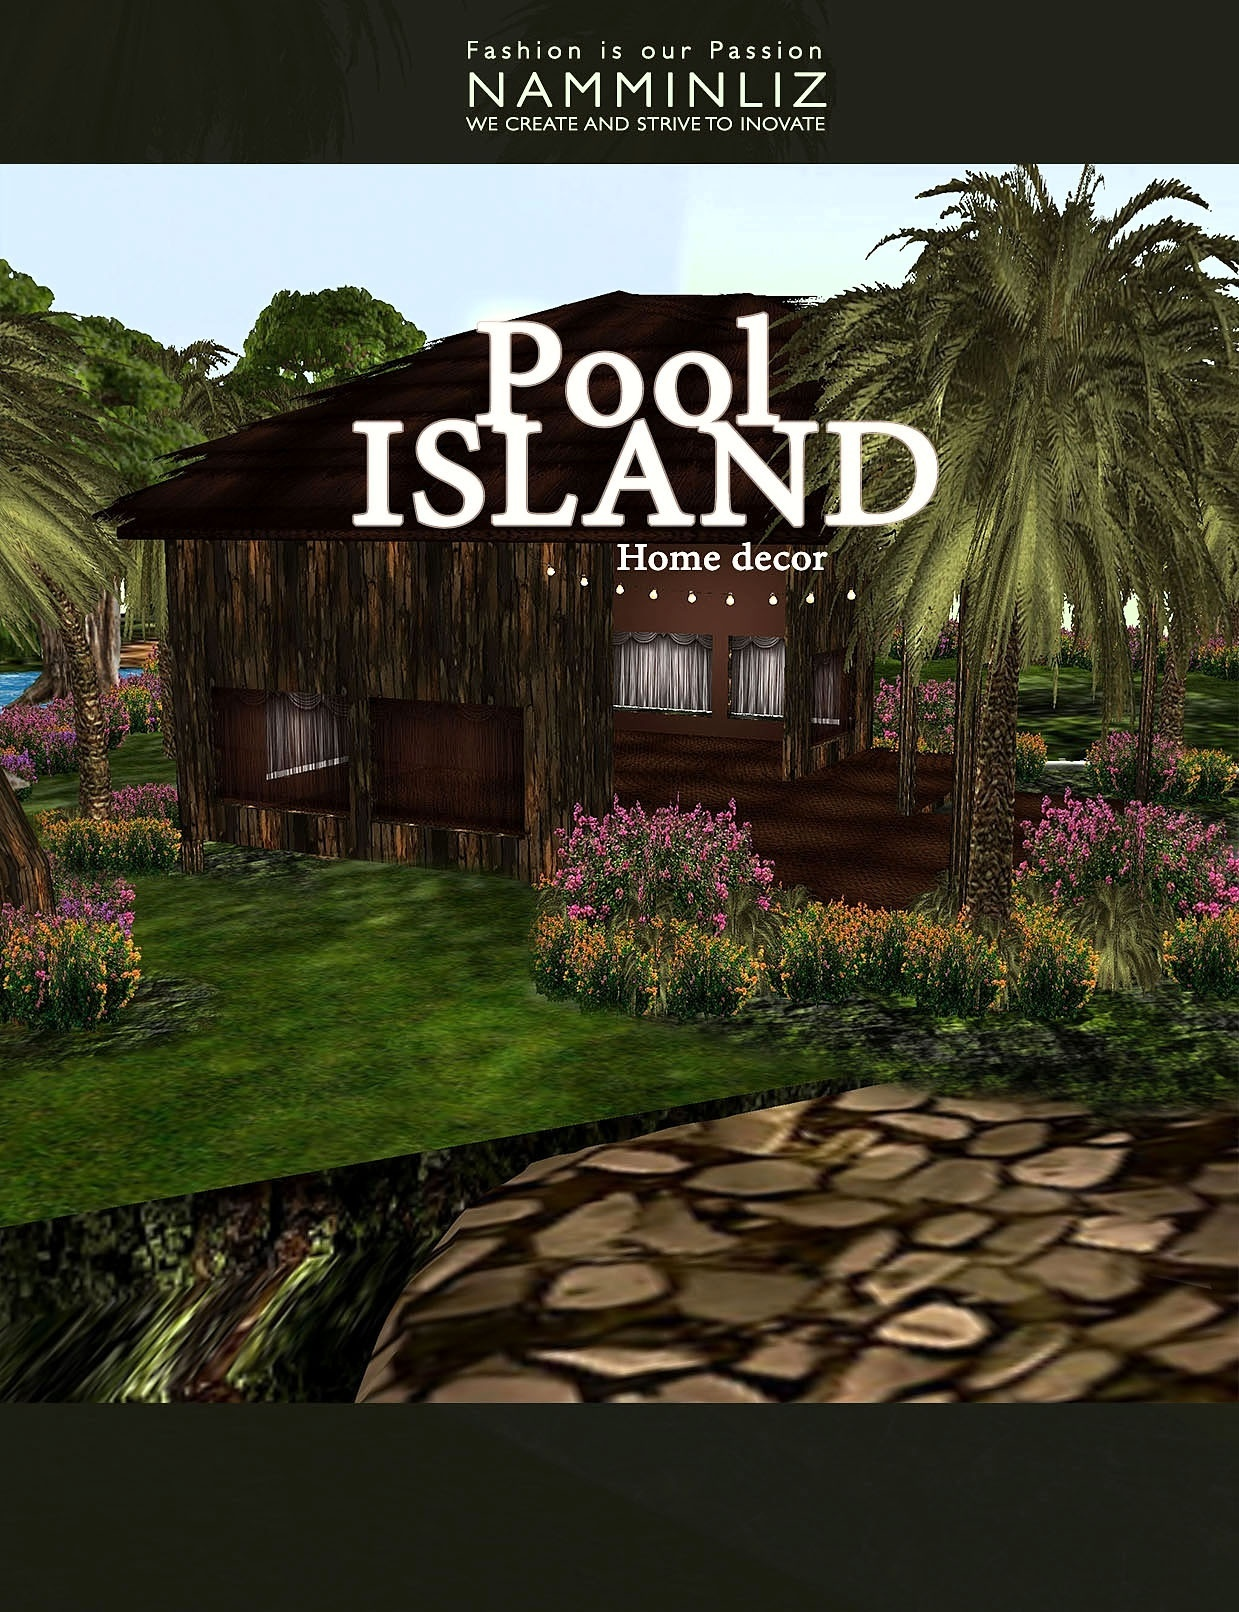 Pool island home decor imvu 45 Textures PNG & 8 *.CHNK